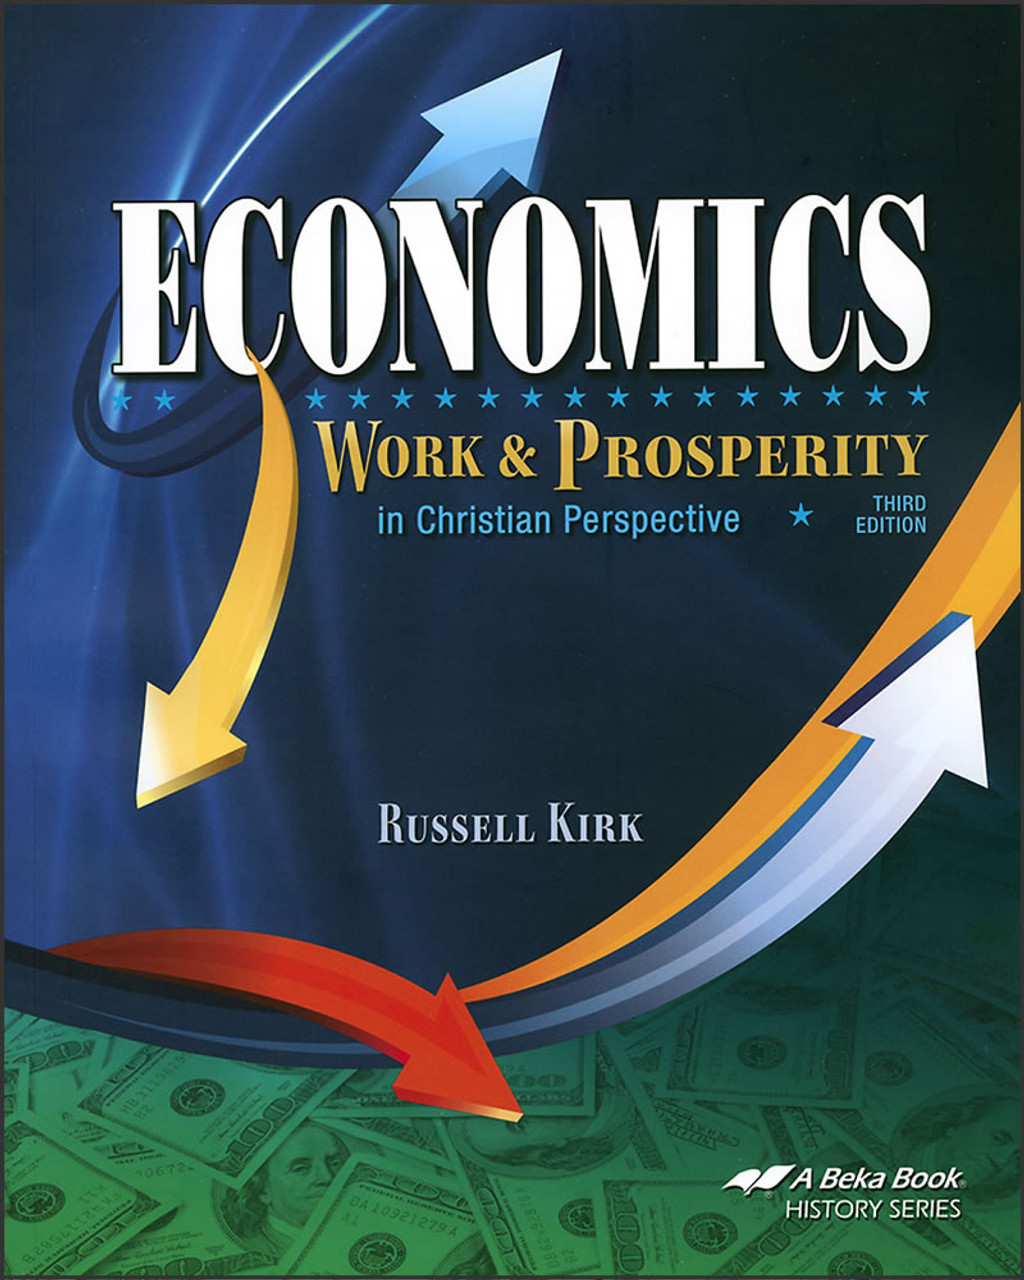 Economics: Work & Prosperity, 3rd edition